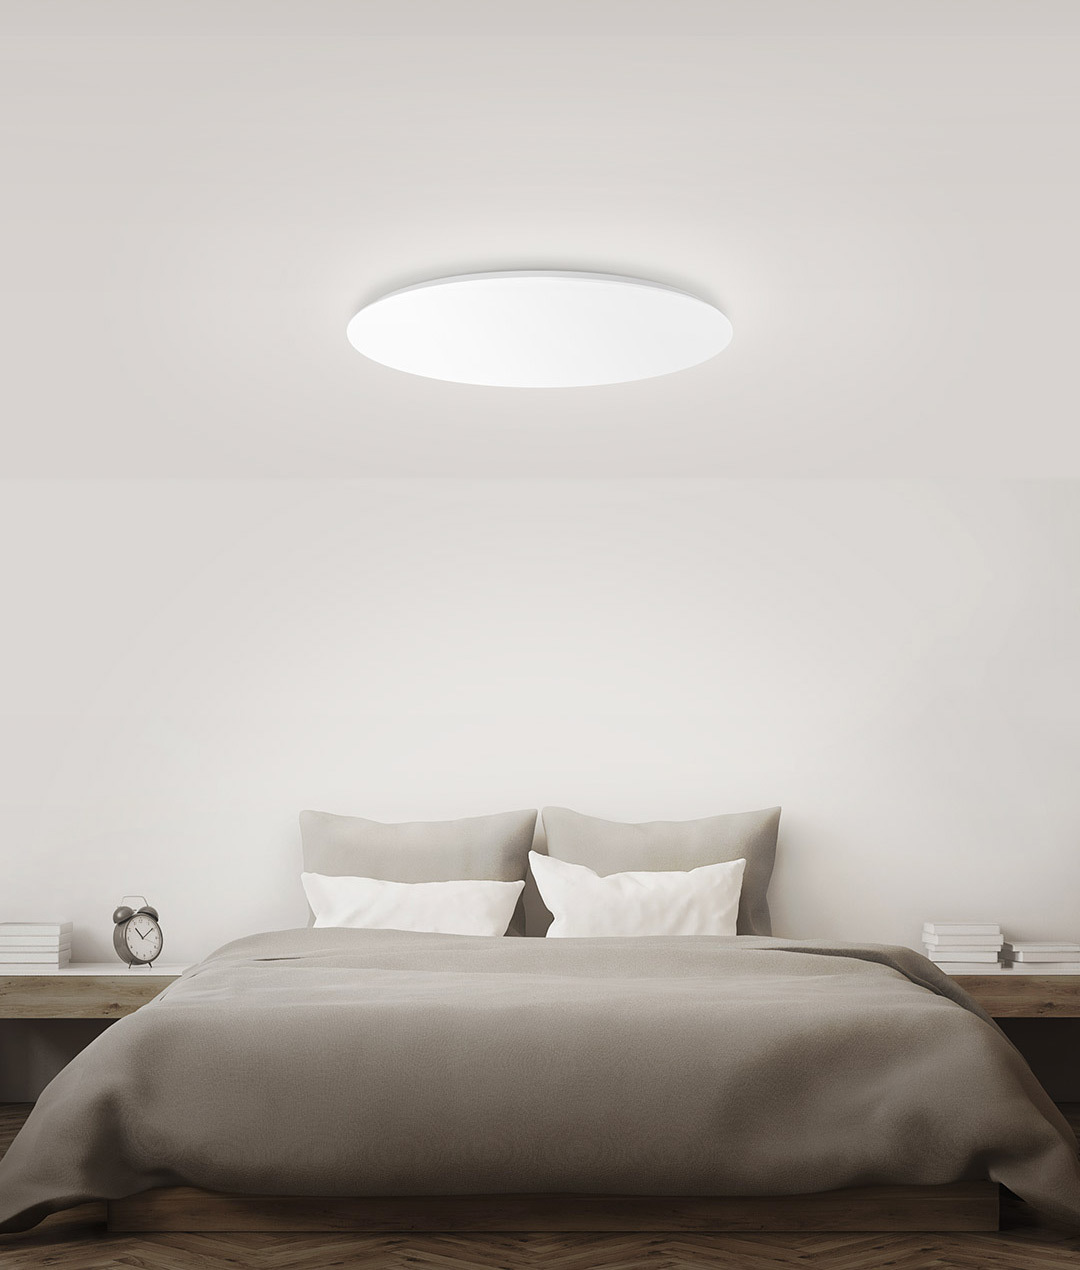 Yeelight LED Smart Ceiling Light стильный дизайн